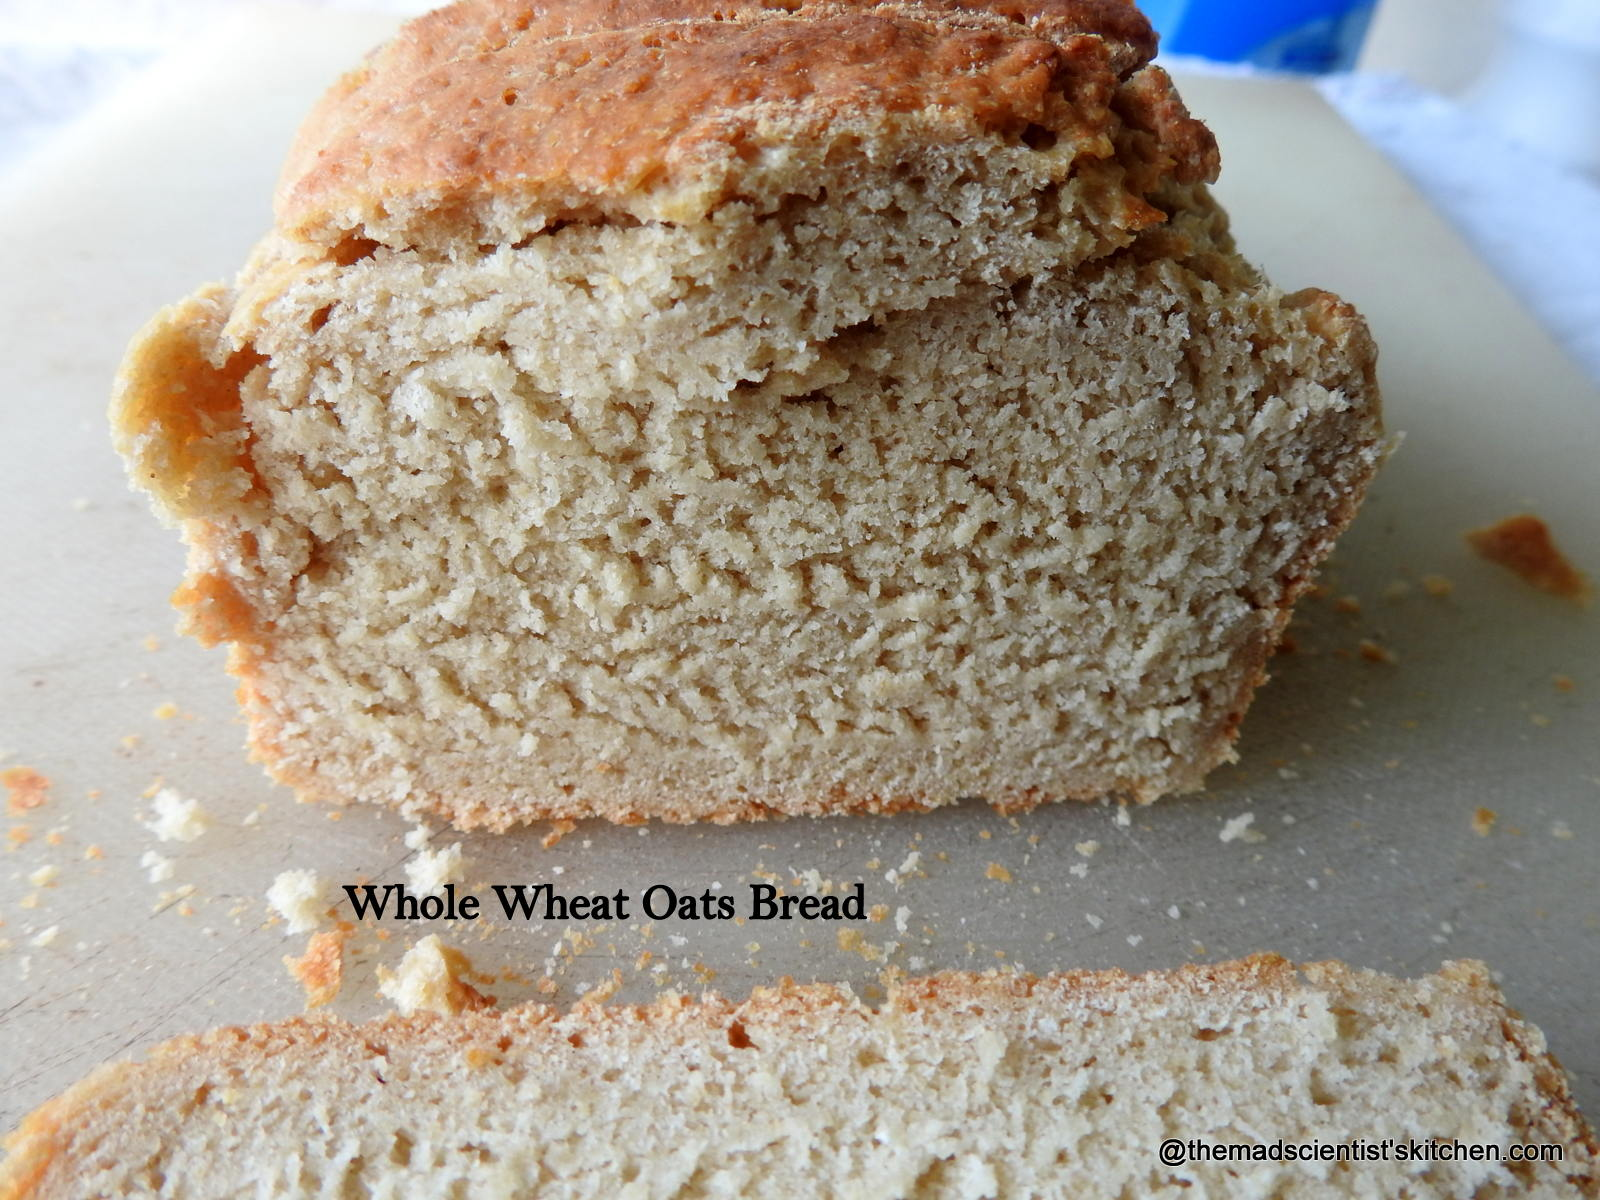 Whole Wheat Oats Bread #BreadBakers